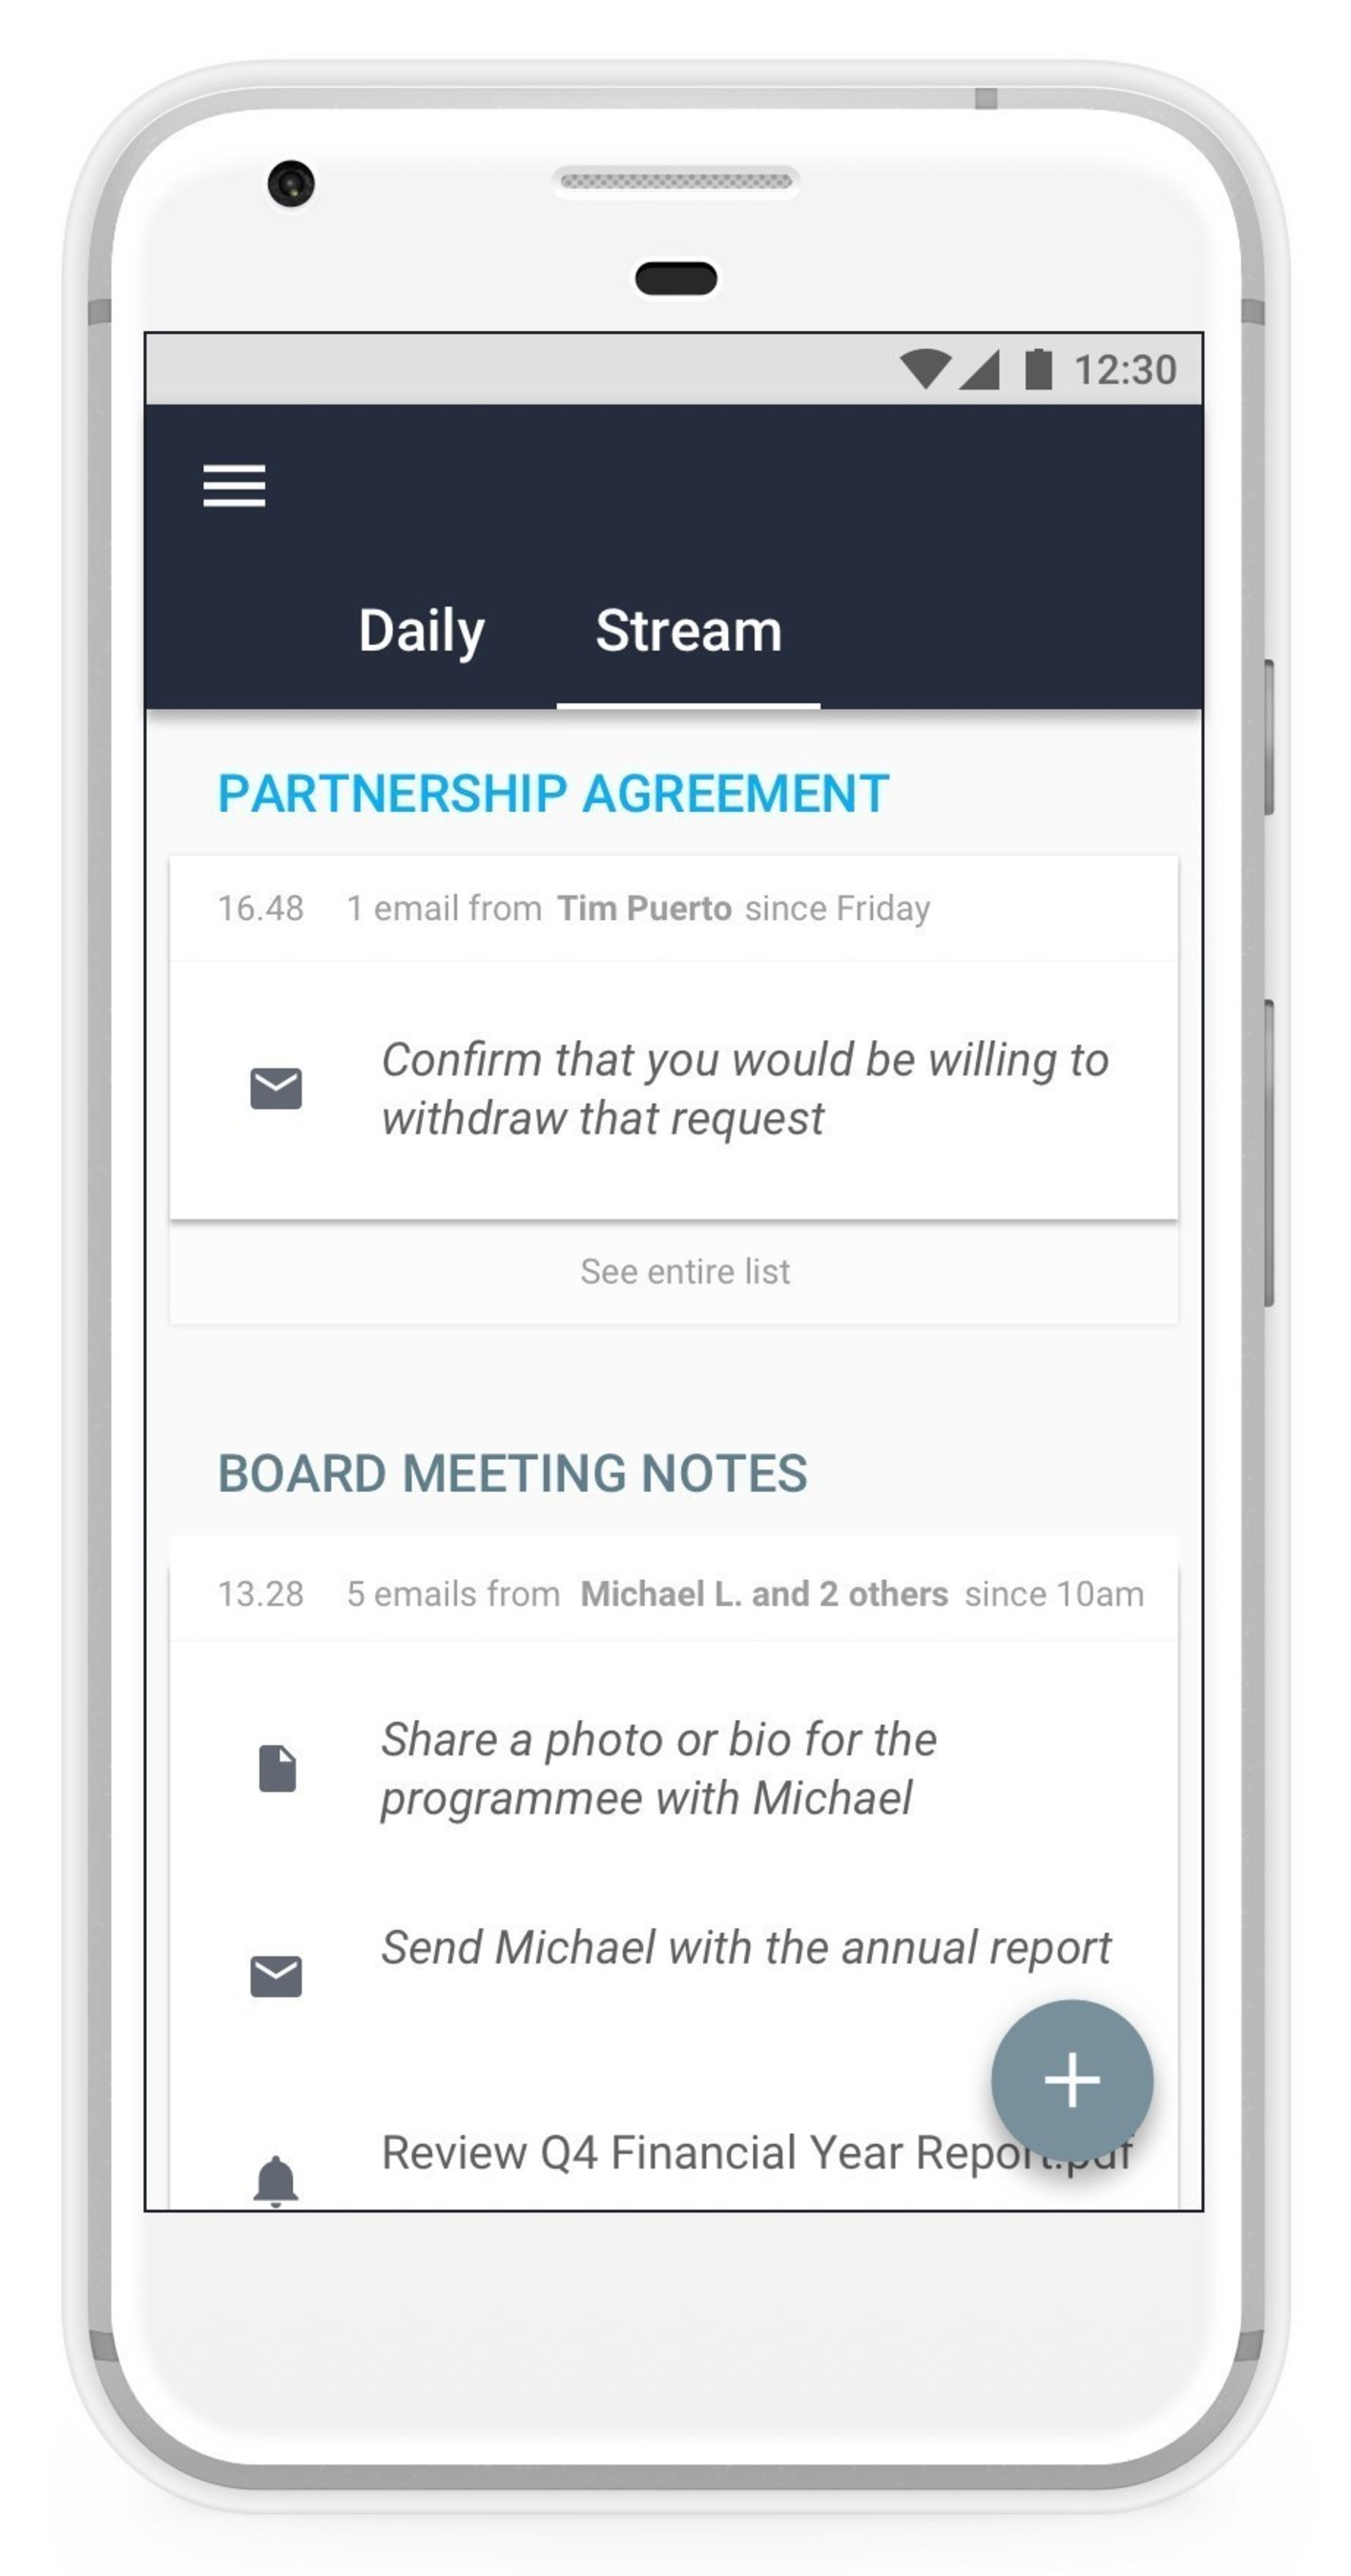 Sussex Place Ventures and SAATCHiNVEST Back Next Generation of Platform to Streamline Productivity with Machine Learning; First Product Released by Gluru on New Platform Tackles Daily Task Lists